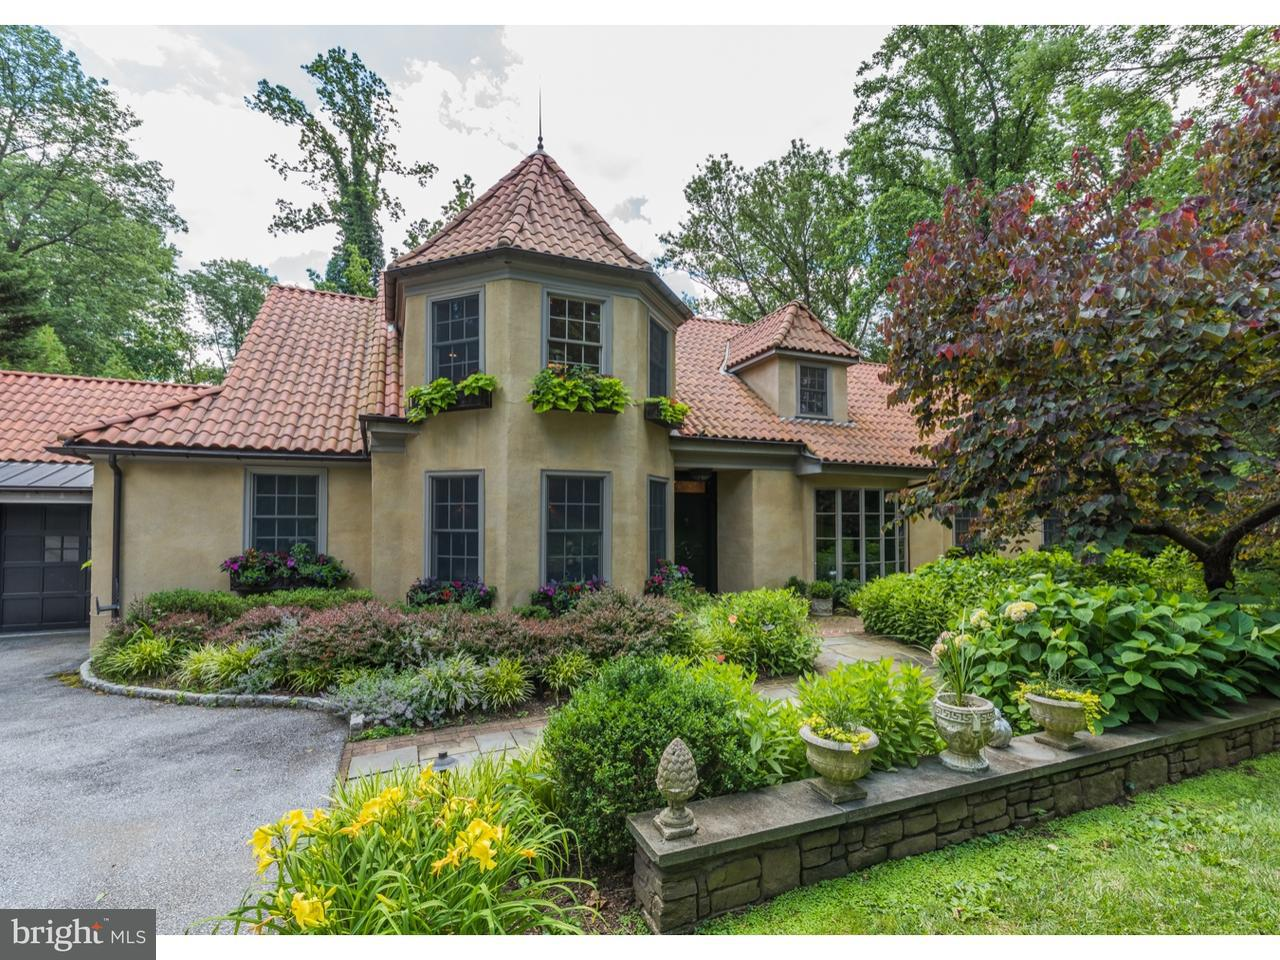 Single Family Home for Sale at 1230 RIDGEWOOD Road Bryn Mawr, Pennsylvania 19010 United States